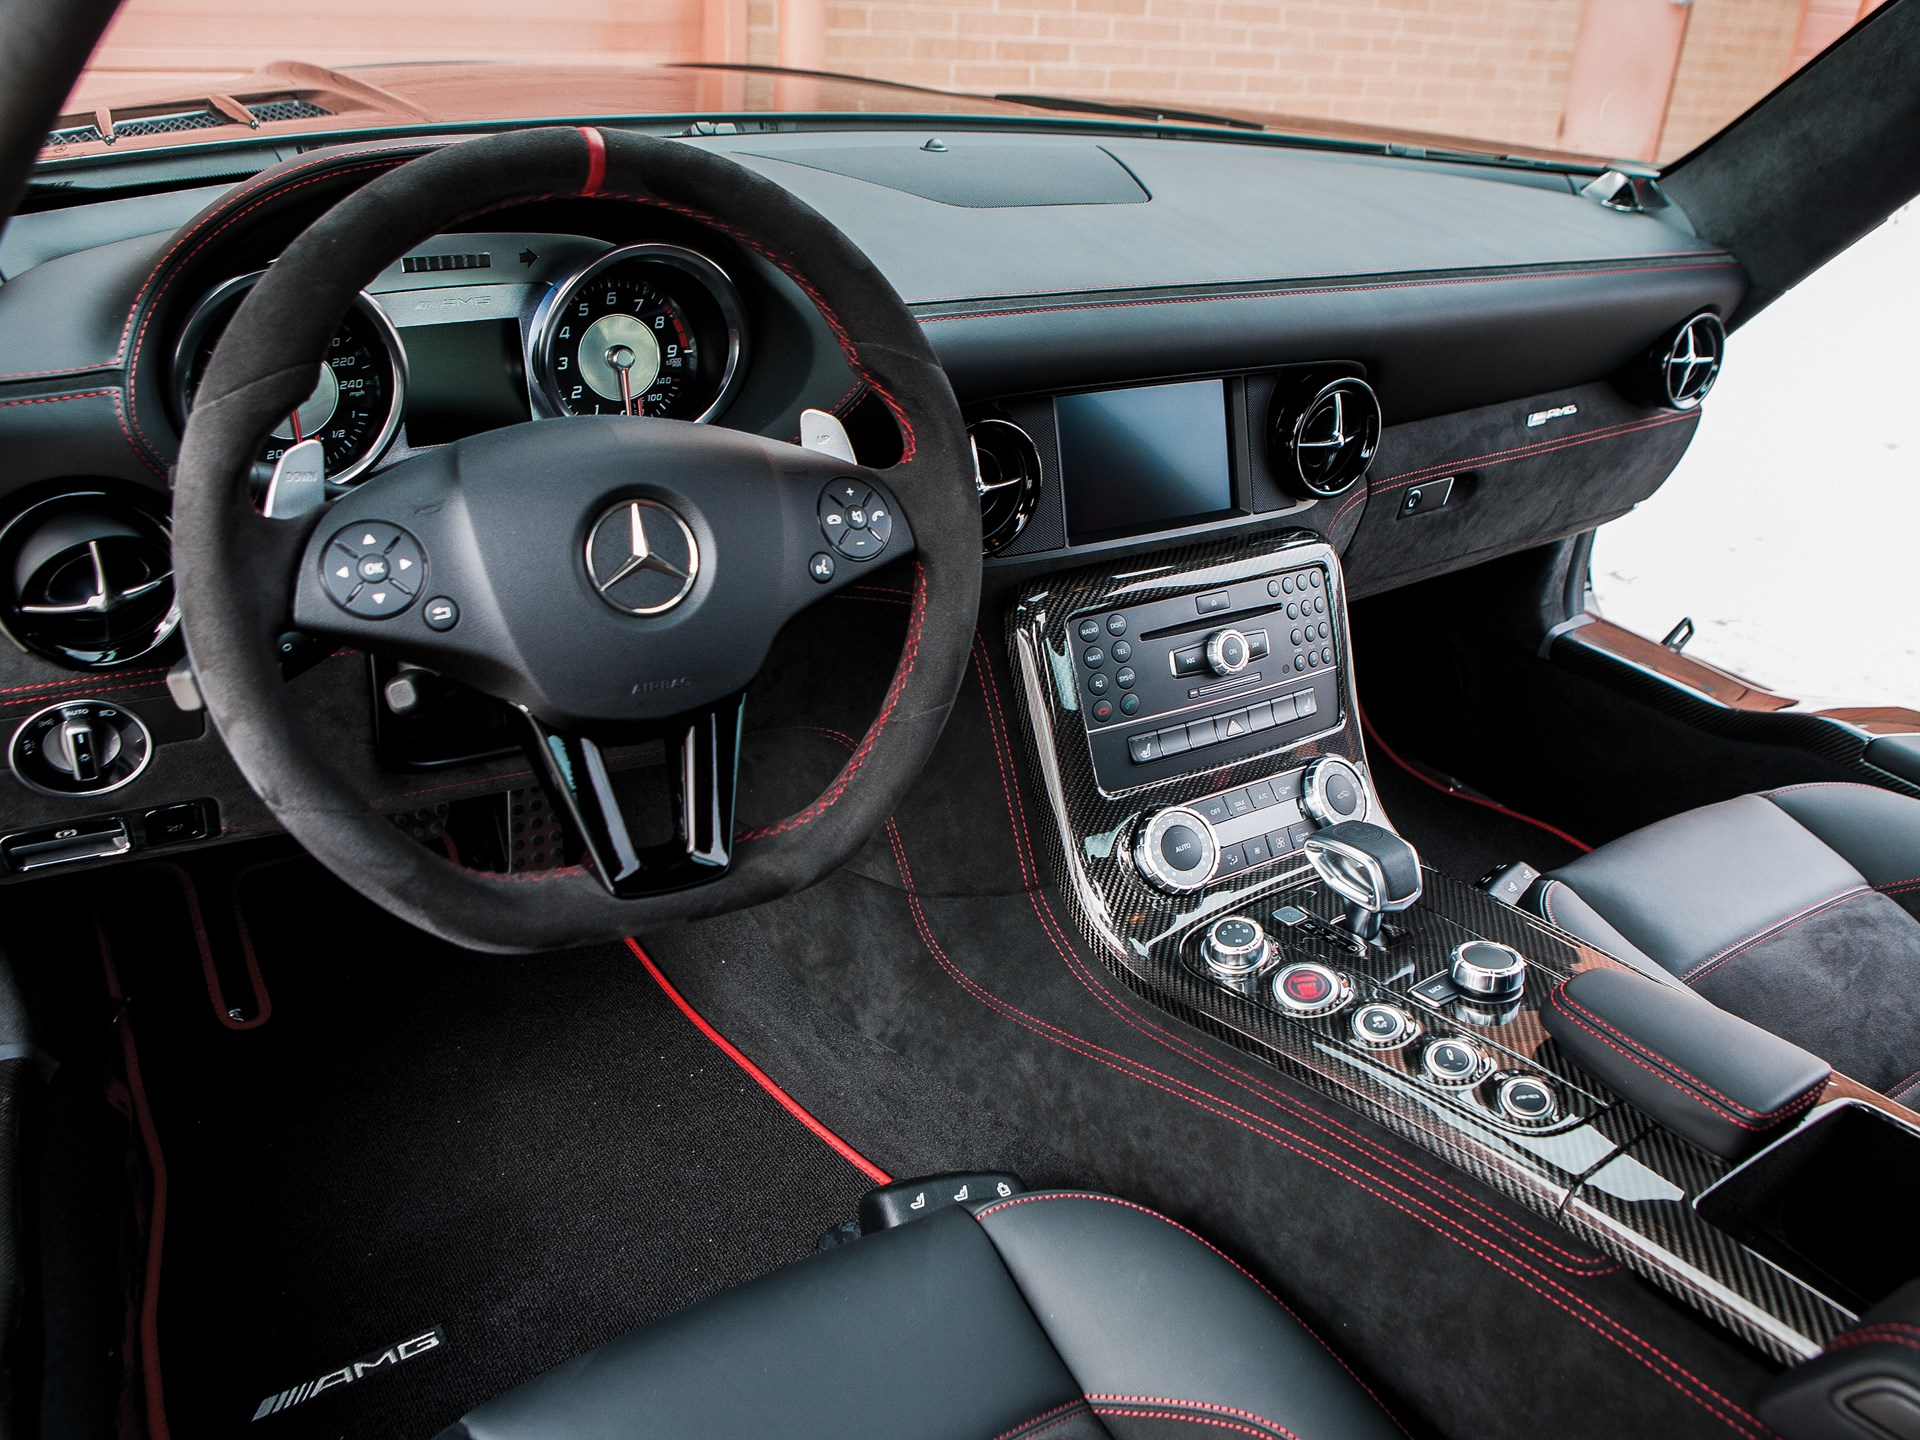 RM Sotheby's - 2014 Mercedes-Benz SLS AMG Black Series Coupe